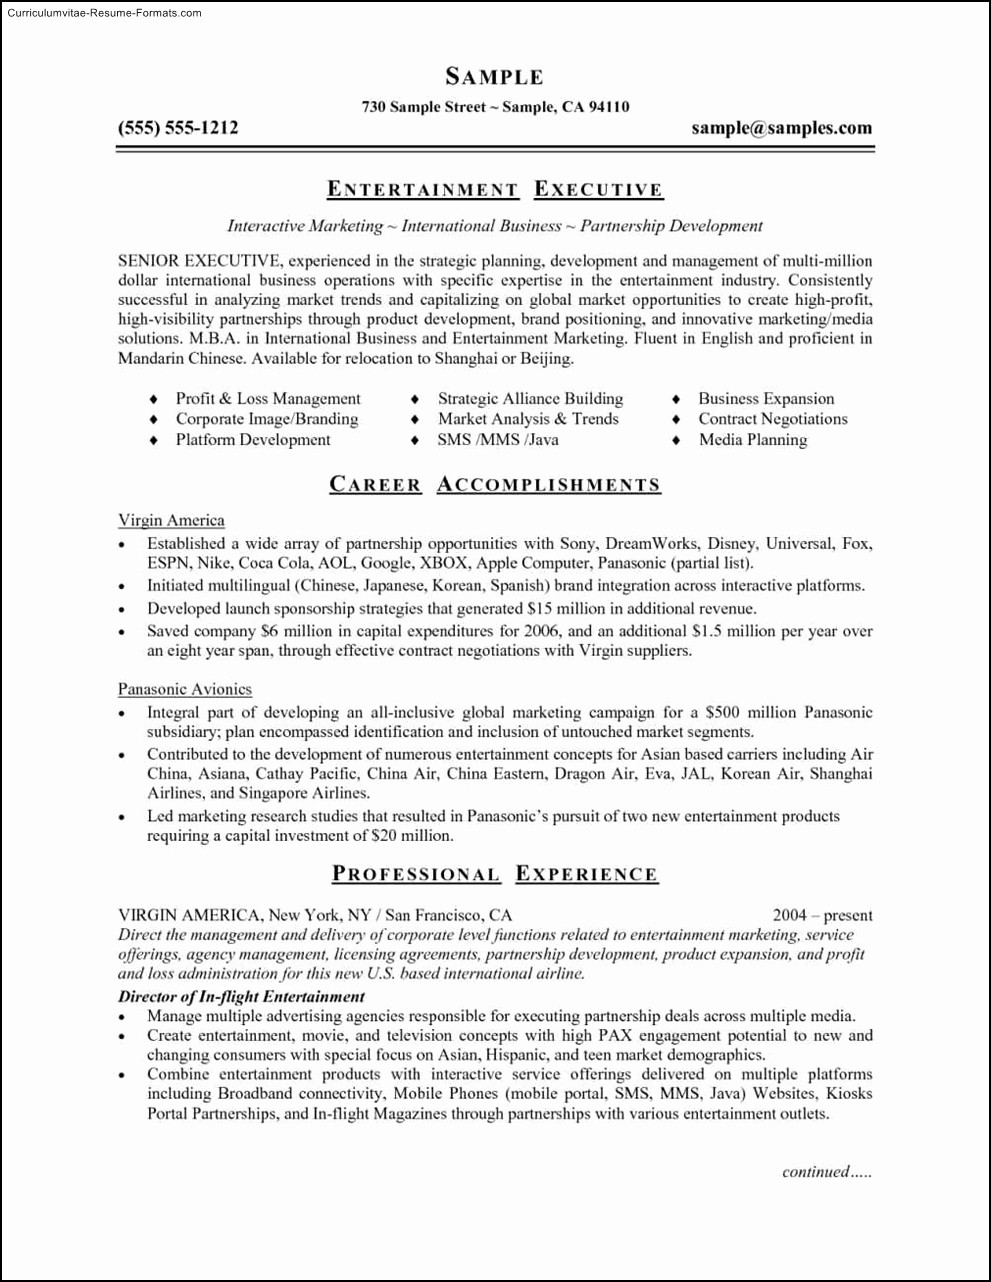 Resume Template Free Download Word New Microsoft Word 2003 Resume Template Free Download Free